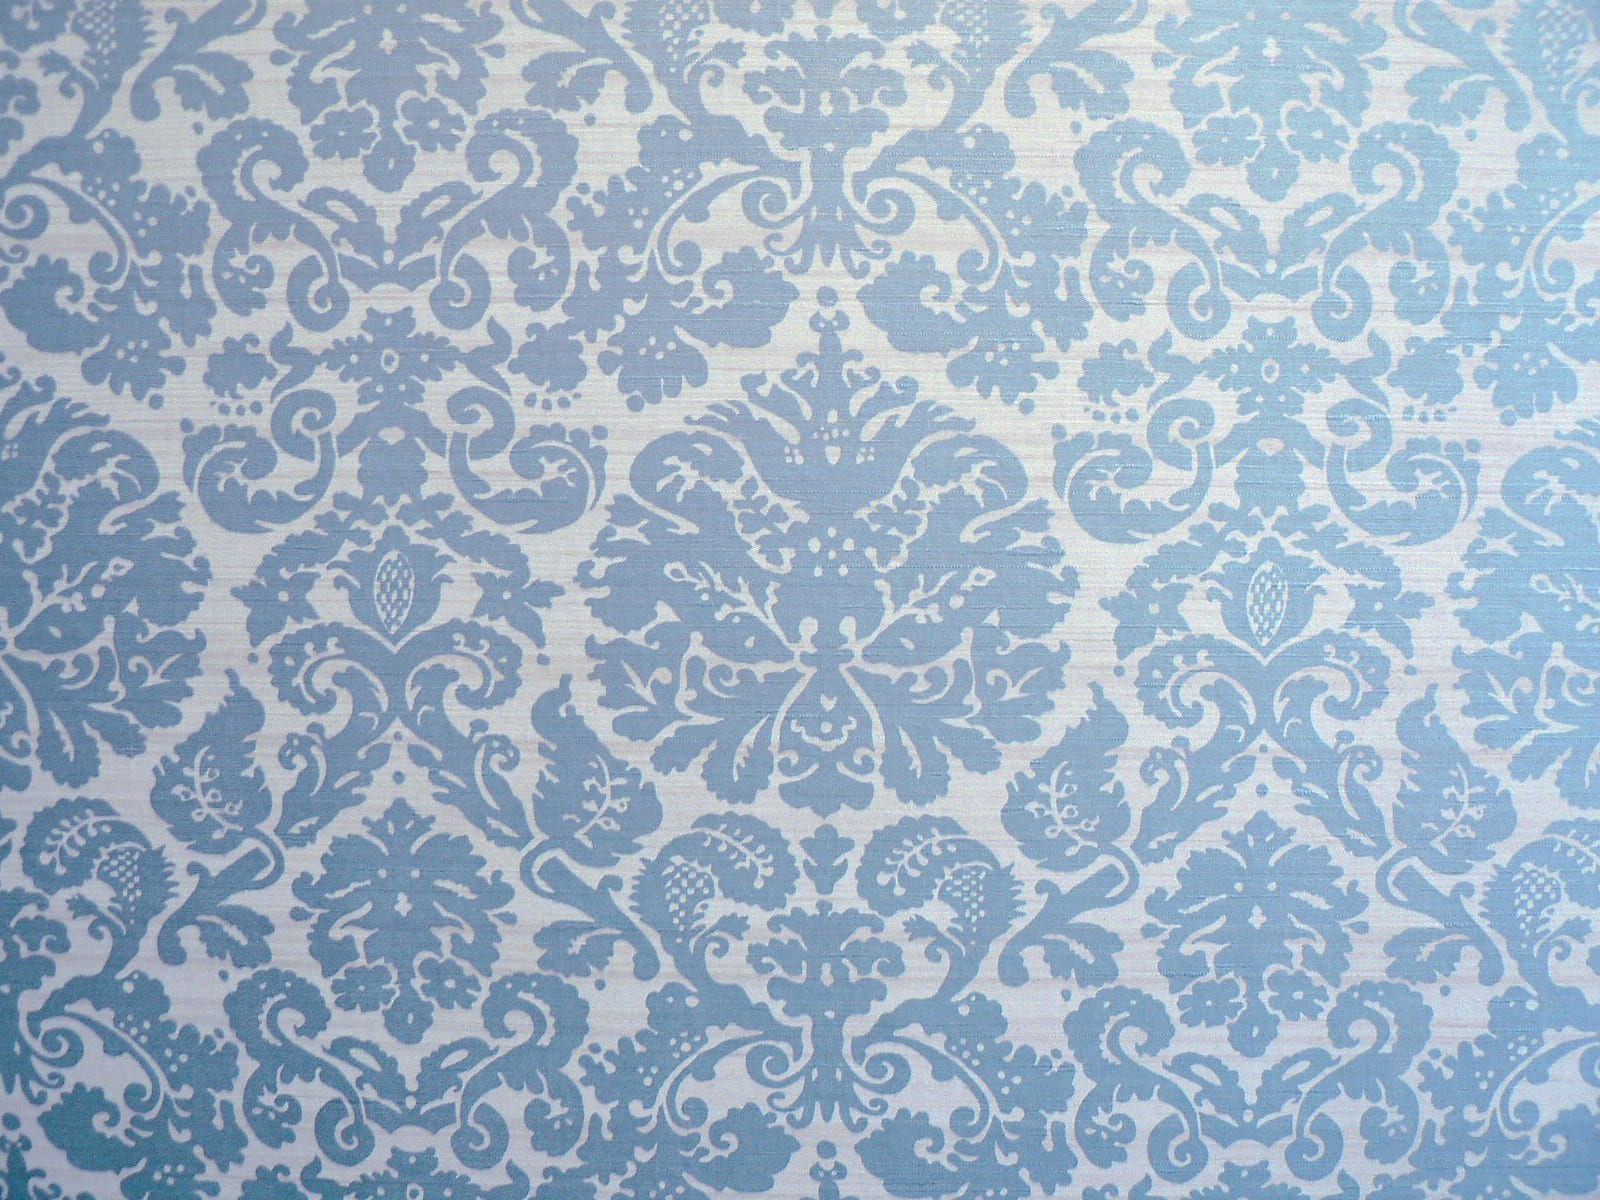 VictorianEdwardian Wallpaper design Graphic Design